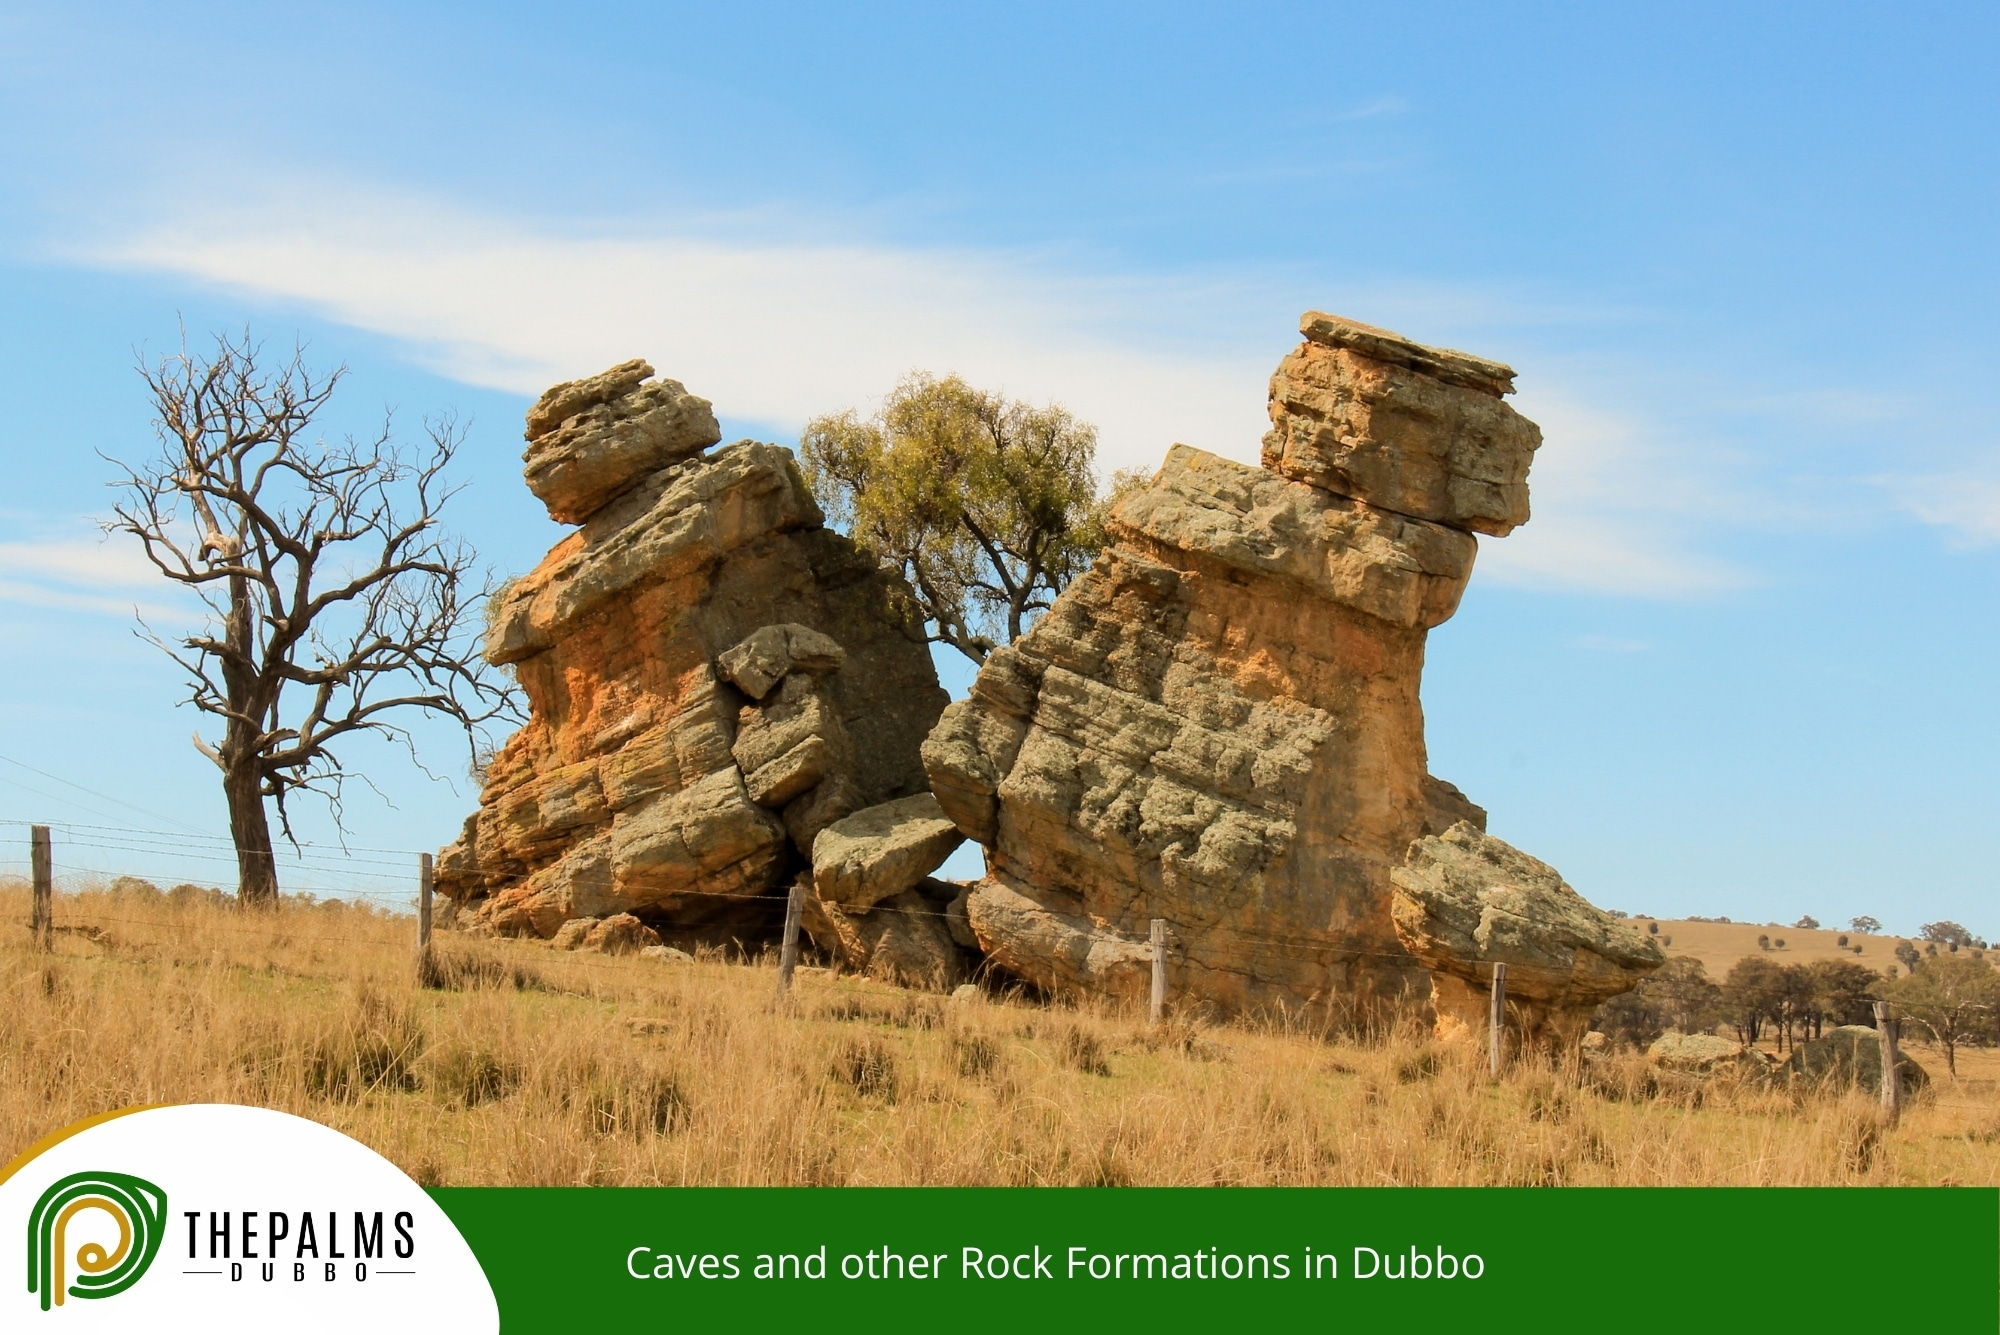 Caves and other Rock Formations in Dubbo